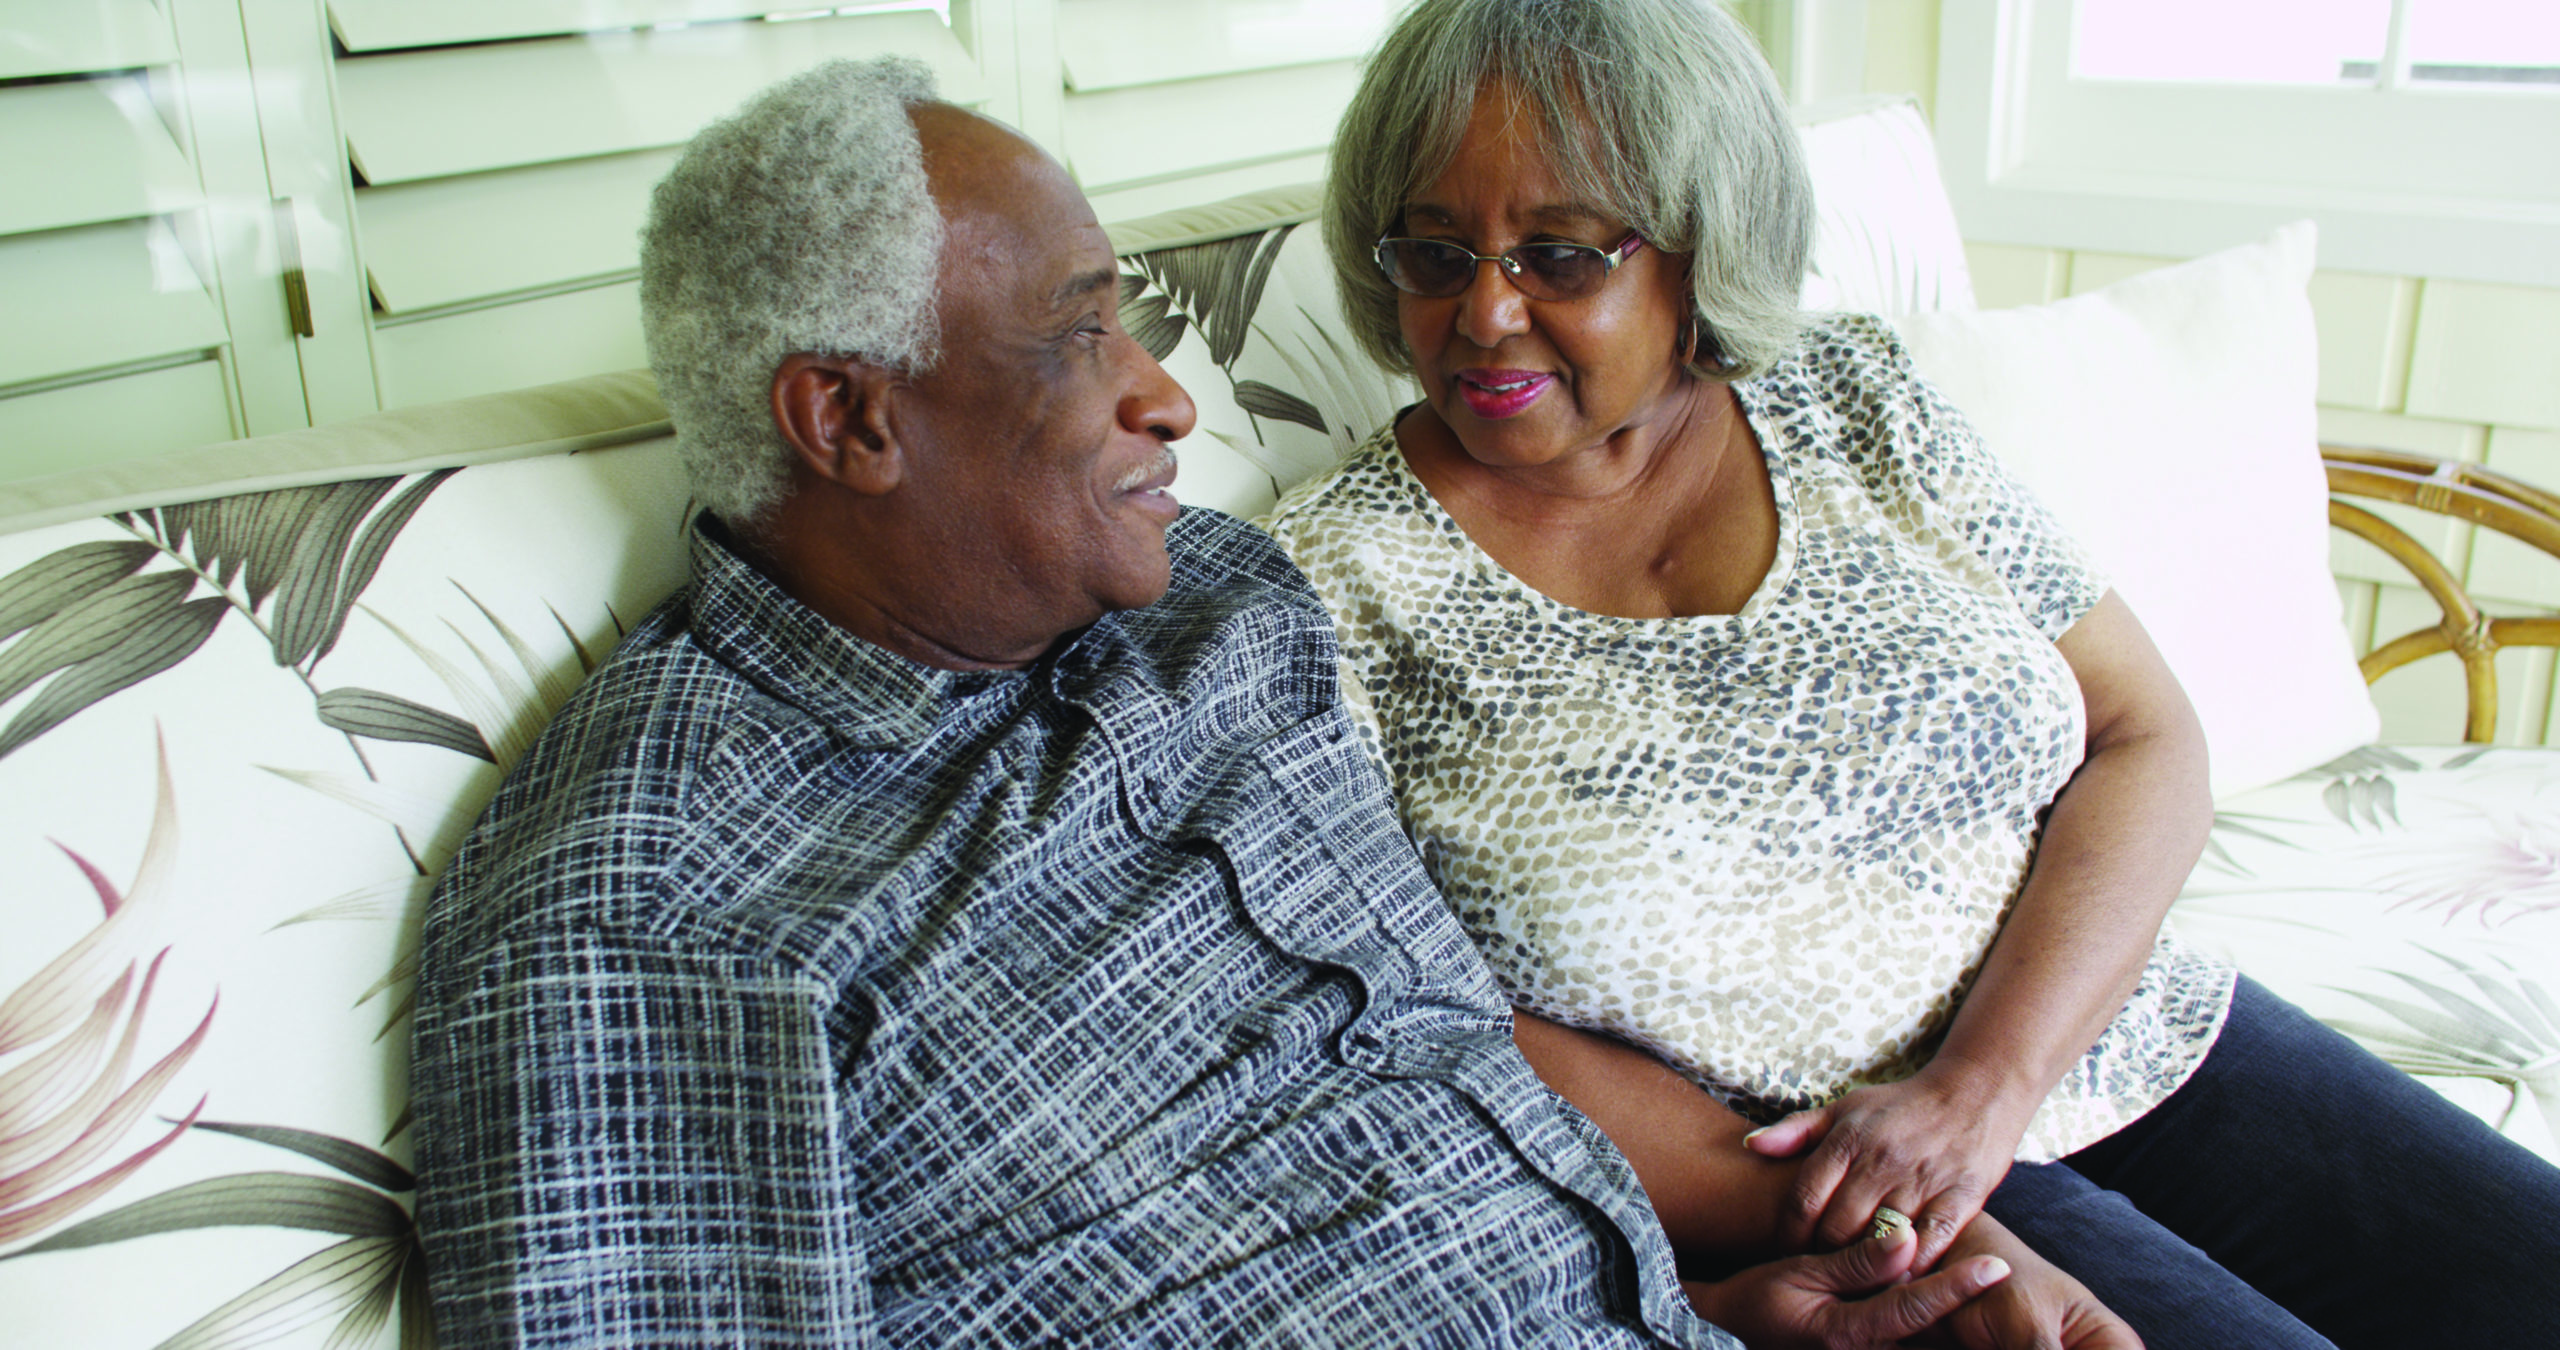 image of elderly couple holding hands, sitting on couch